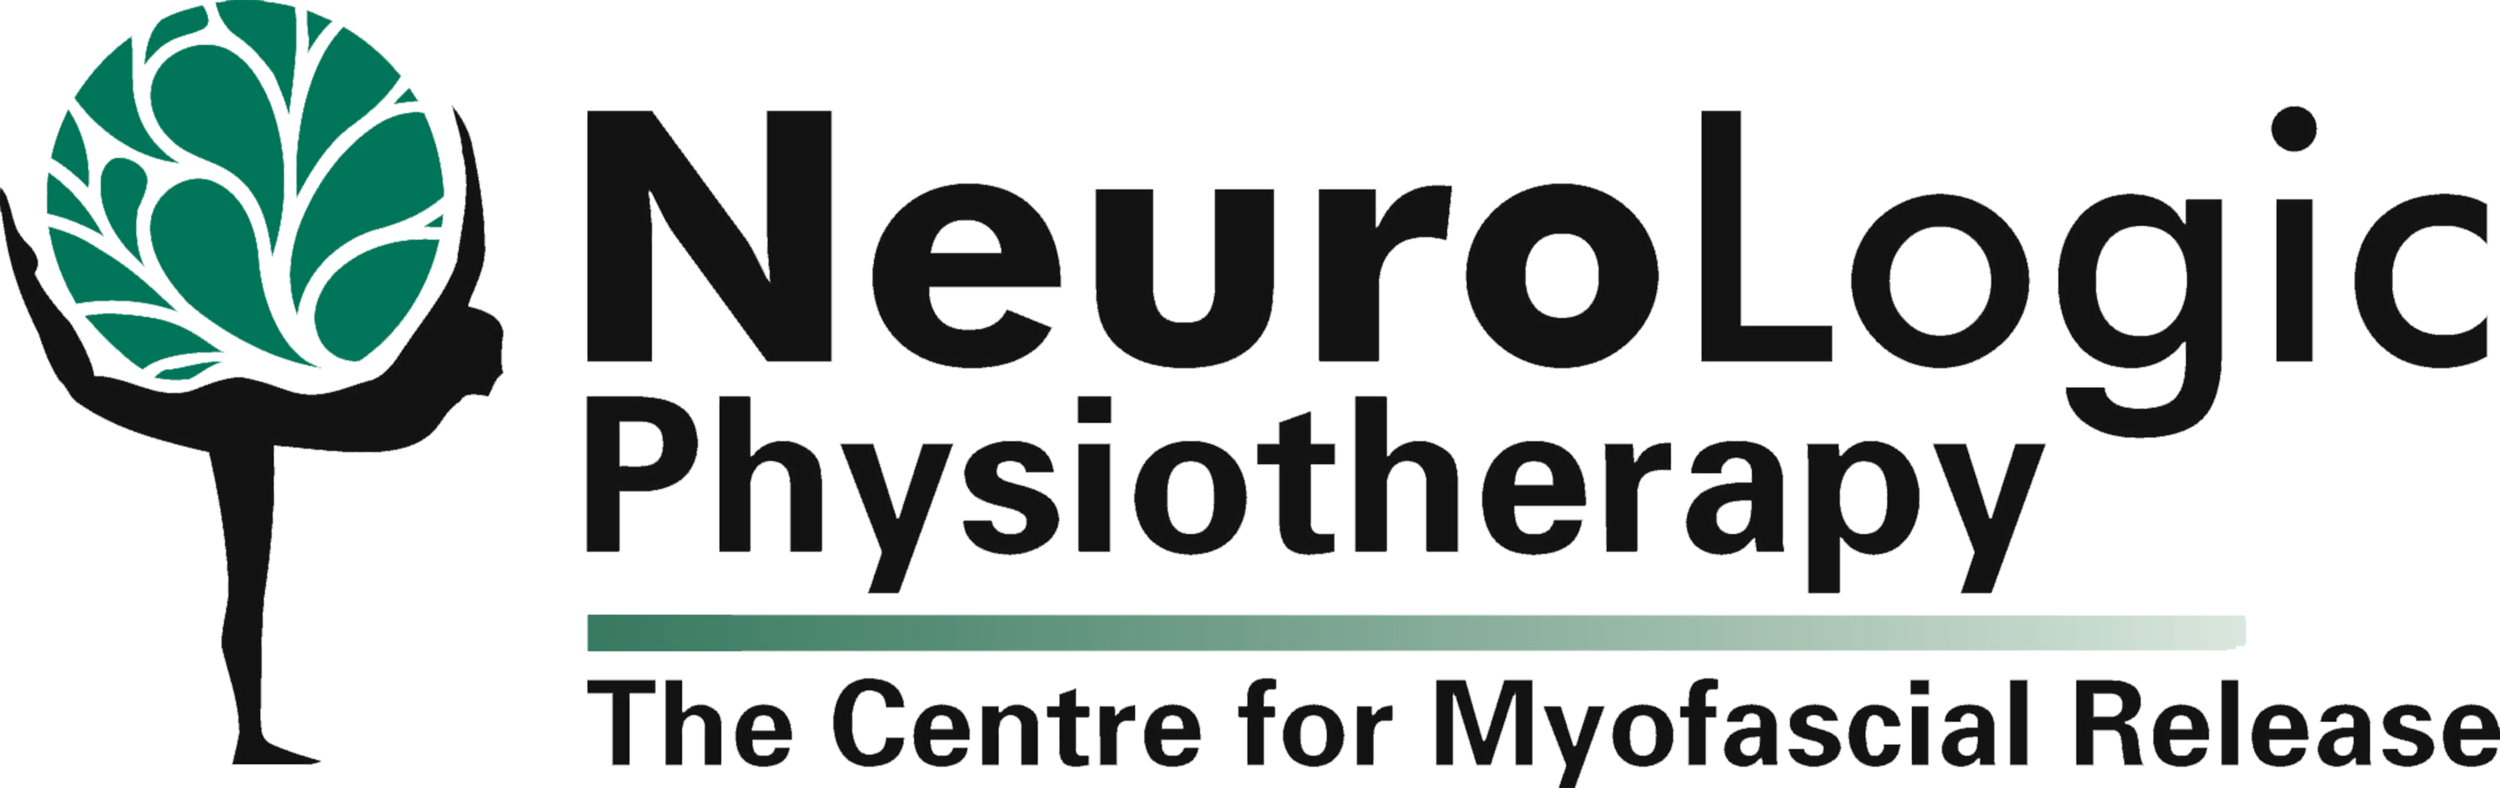 NeuroPhysioLogo PNG.png